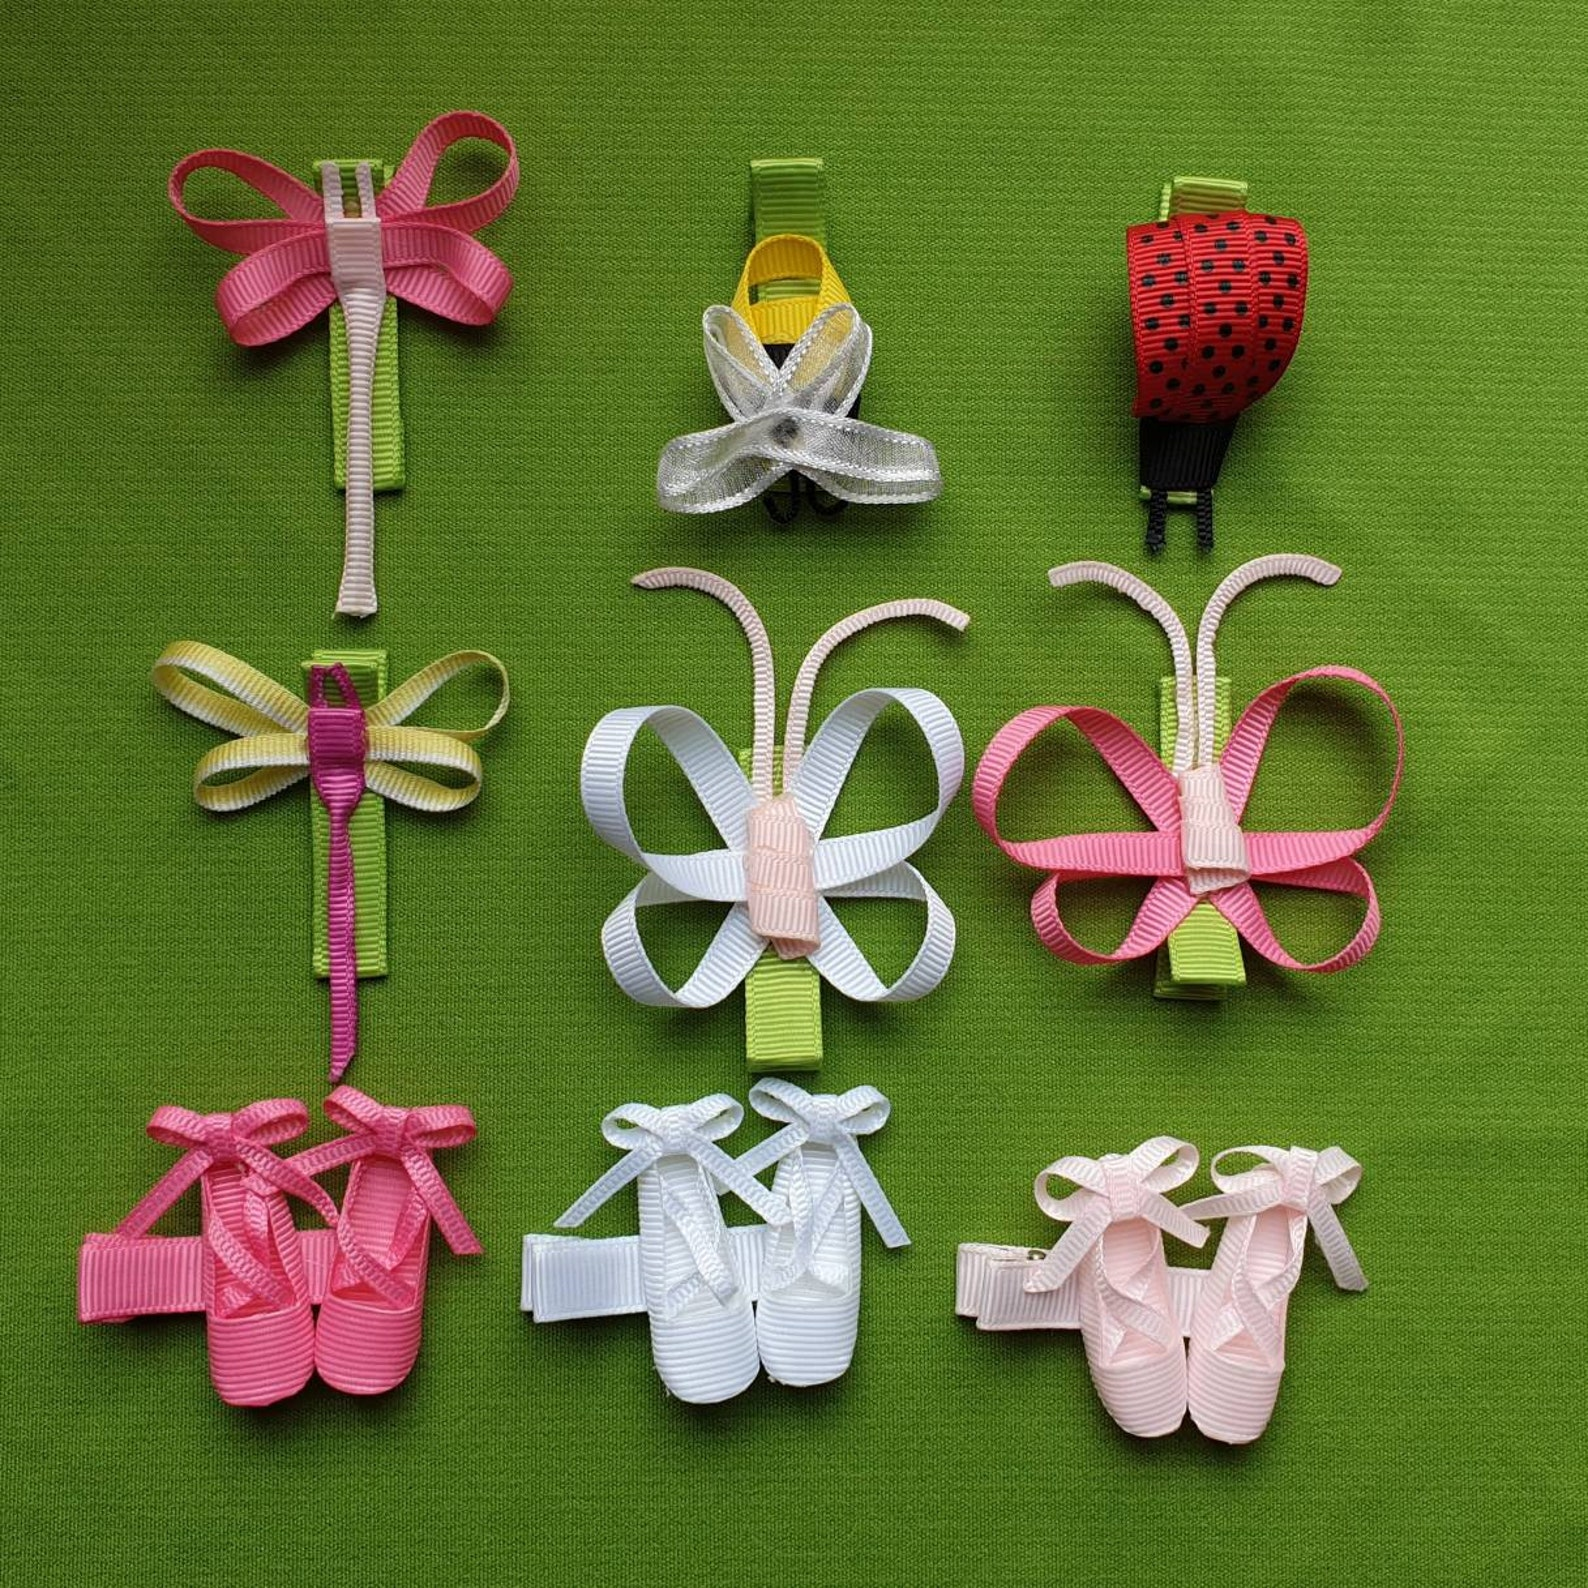 ribbon sculpture hair clip ladybird/ bumble bee/ dance shoes/ ballet shoes/ dragonfly/ butterfly